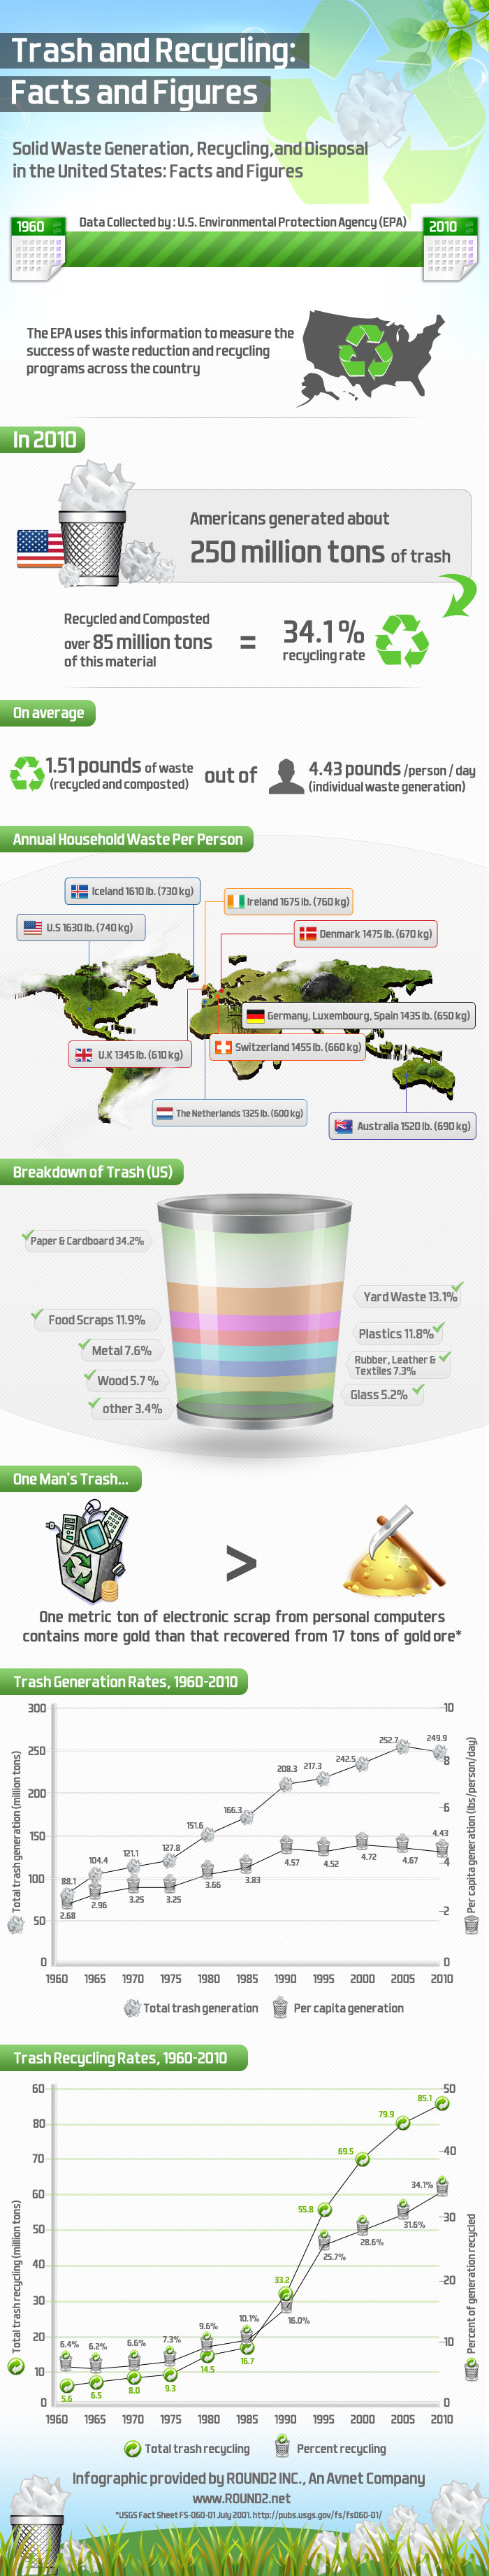 Waste Management Industry Facts